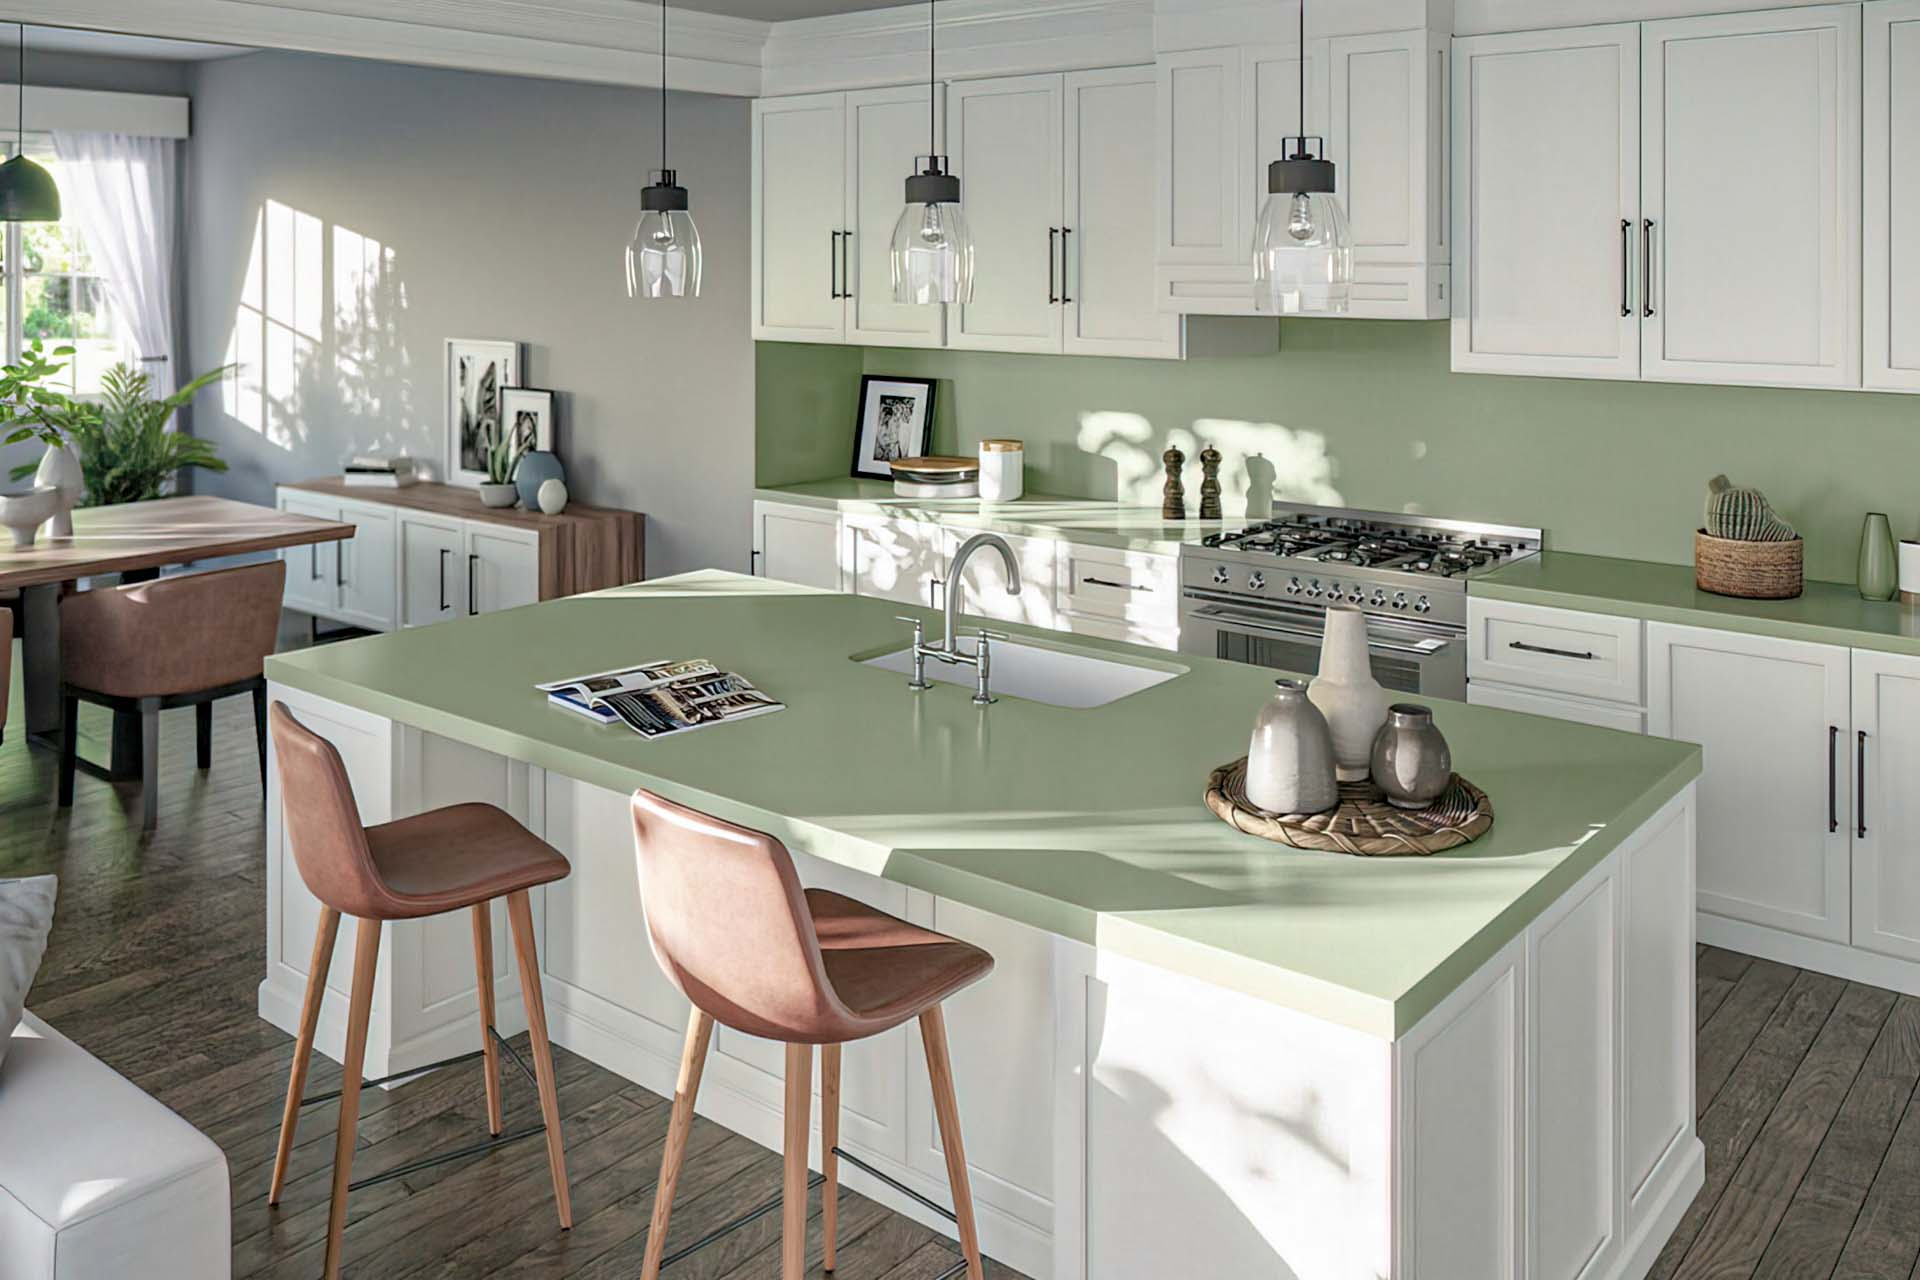 Silestone-Sunlit-Days-Posidonia-Green_kitchen-_web-1100×800-gigapixel-low_res-scale-2_00x a